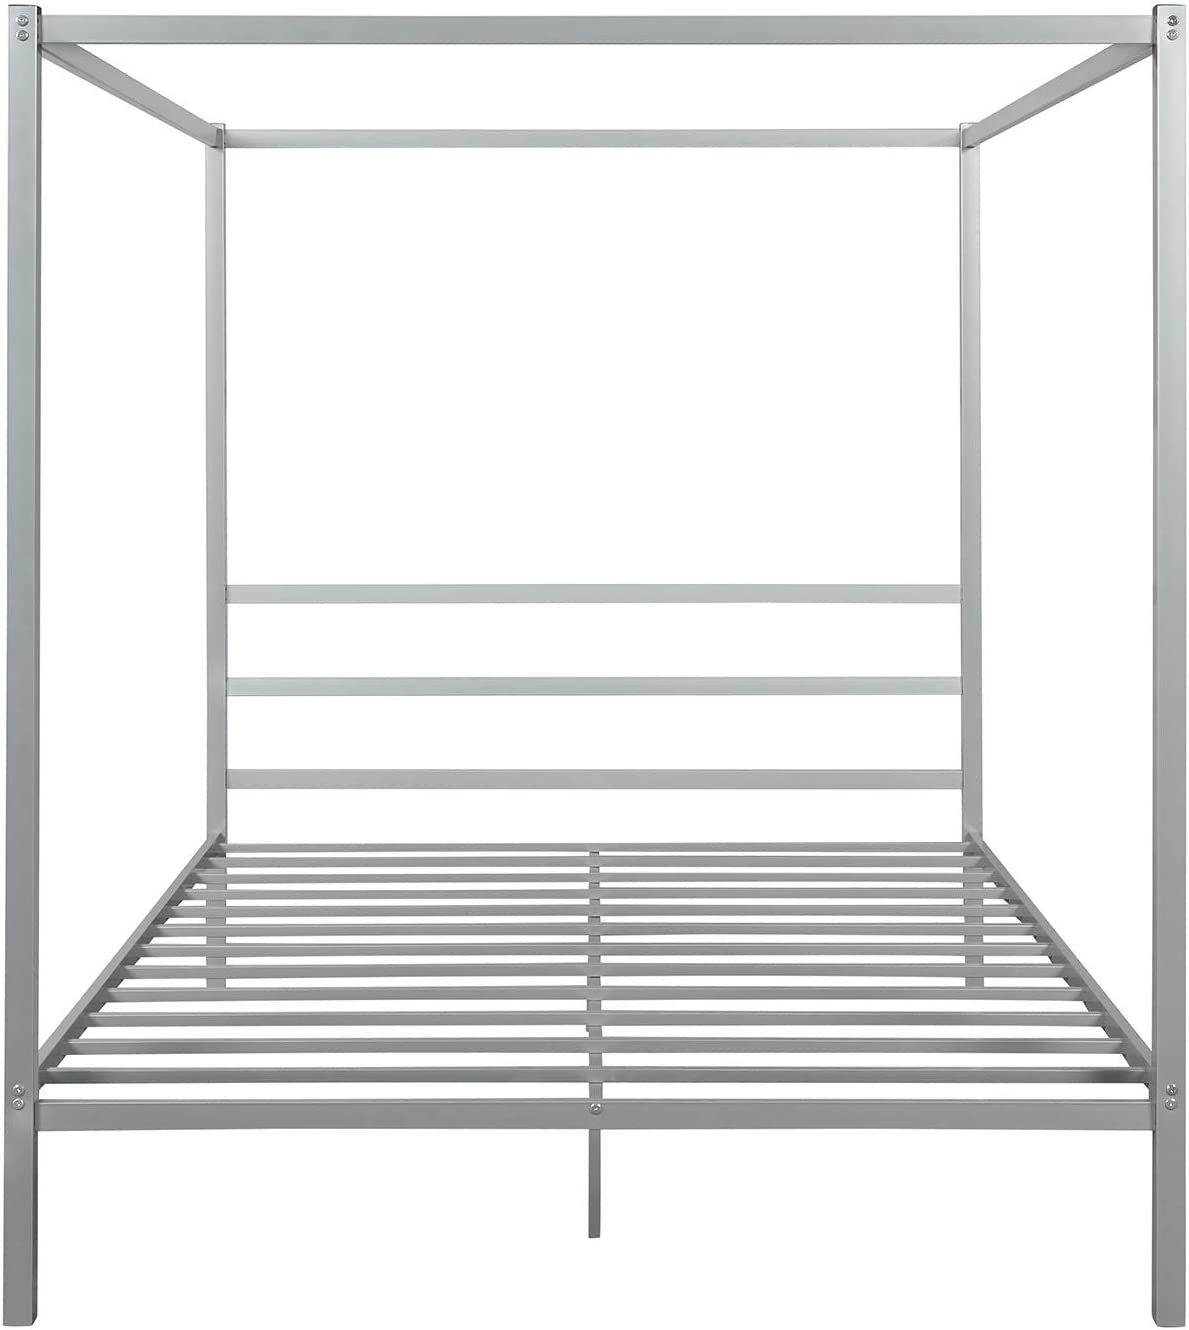 JIMAOD Metal Frame Canopy Recommendation Platform Built-in Headboard with Bed Save money